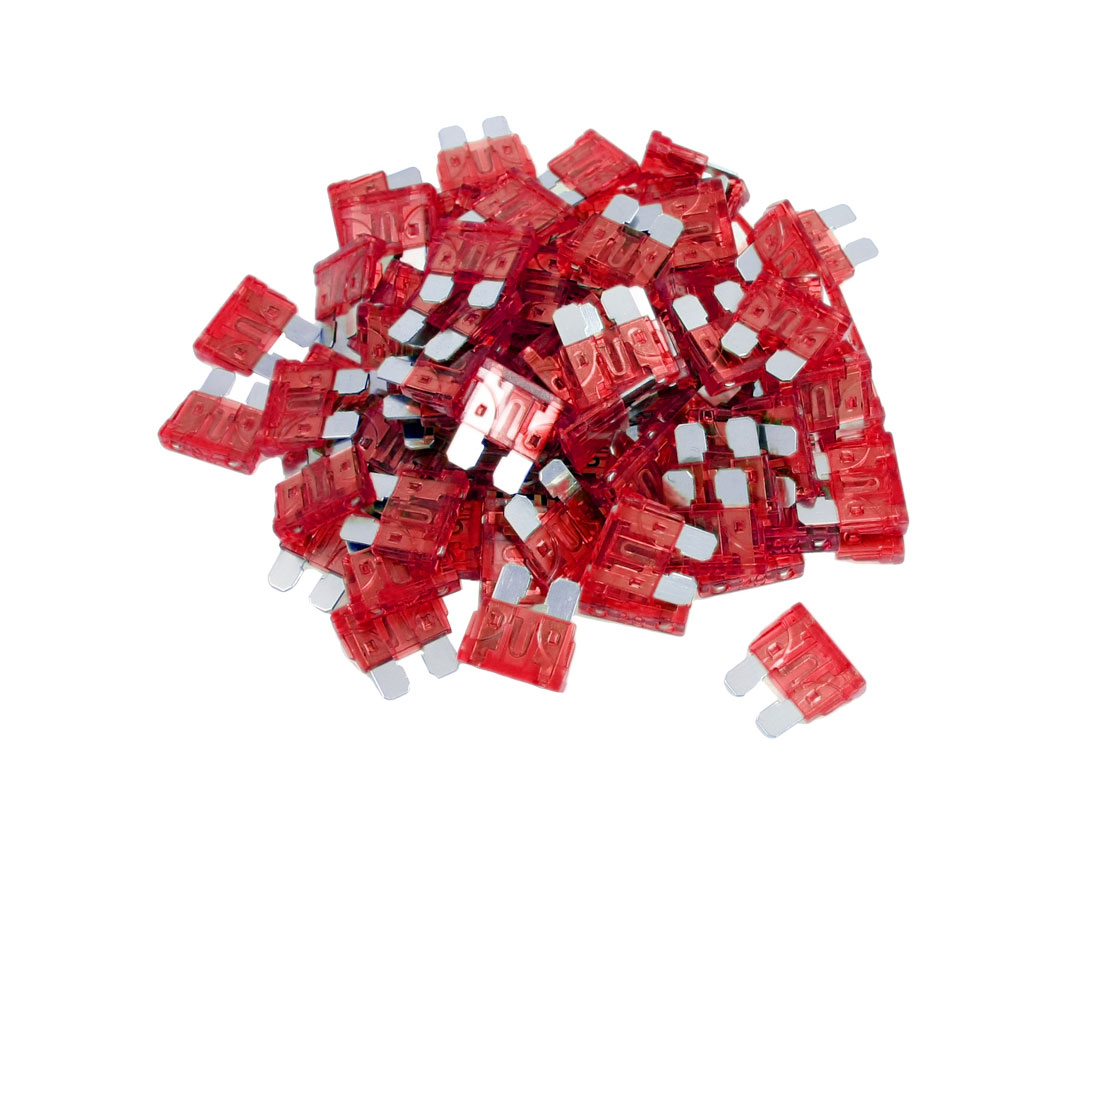 Car Truck Motorcycle Van 10A Flat Blade Fuse Red 100 Pcs